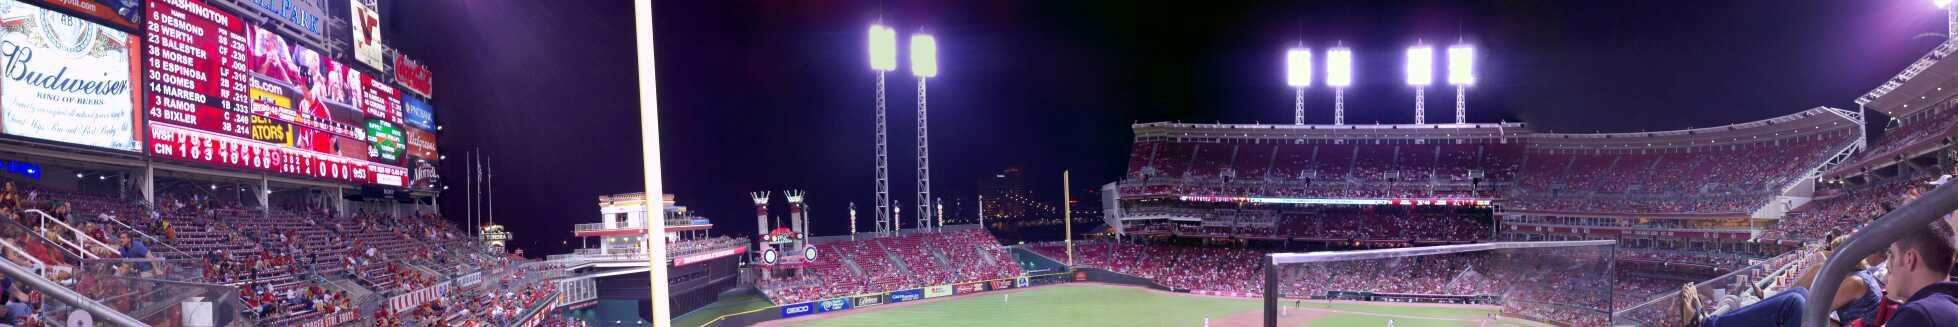 Great American Ball Park Section 410 Row A Seat 1